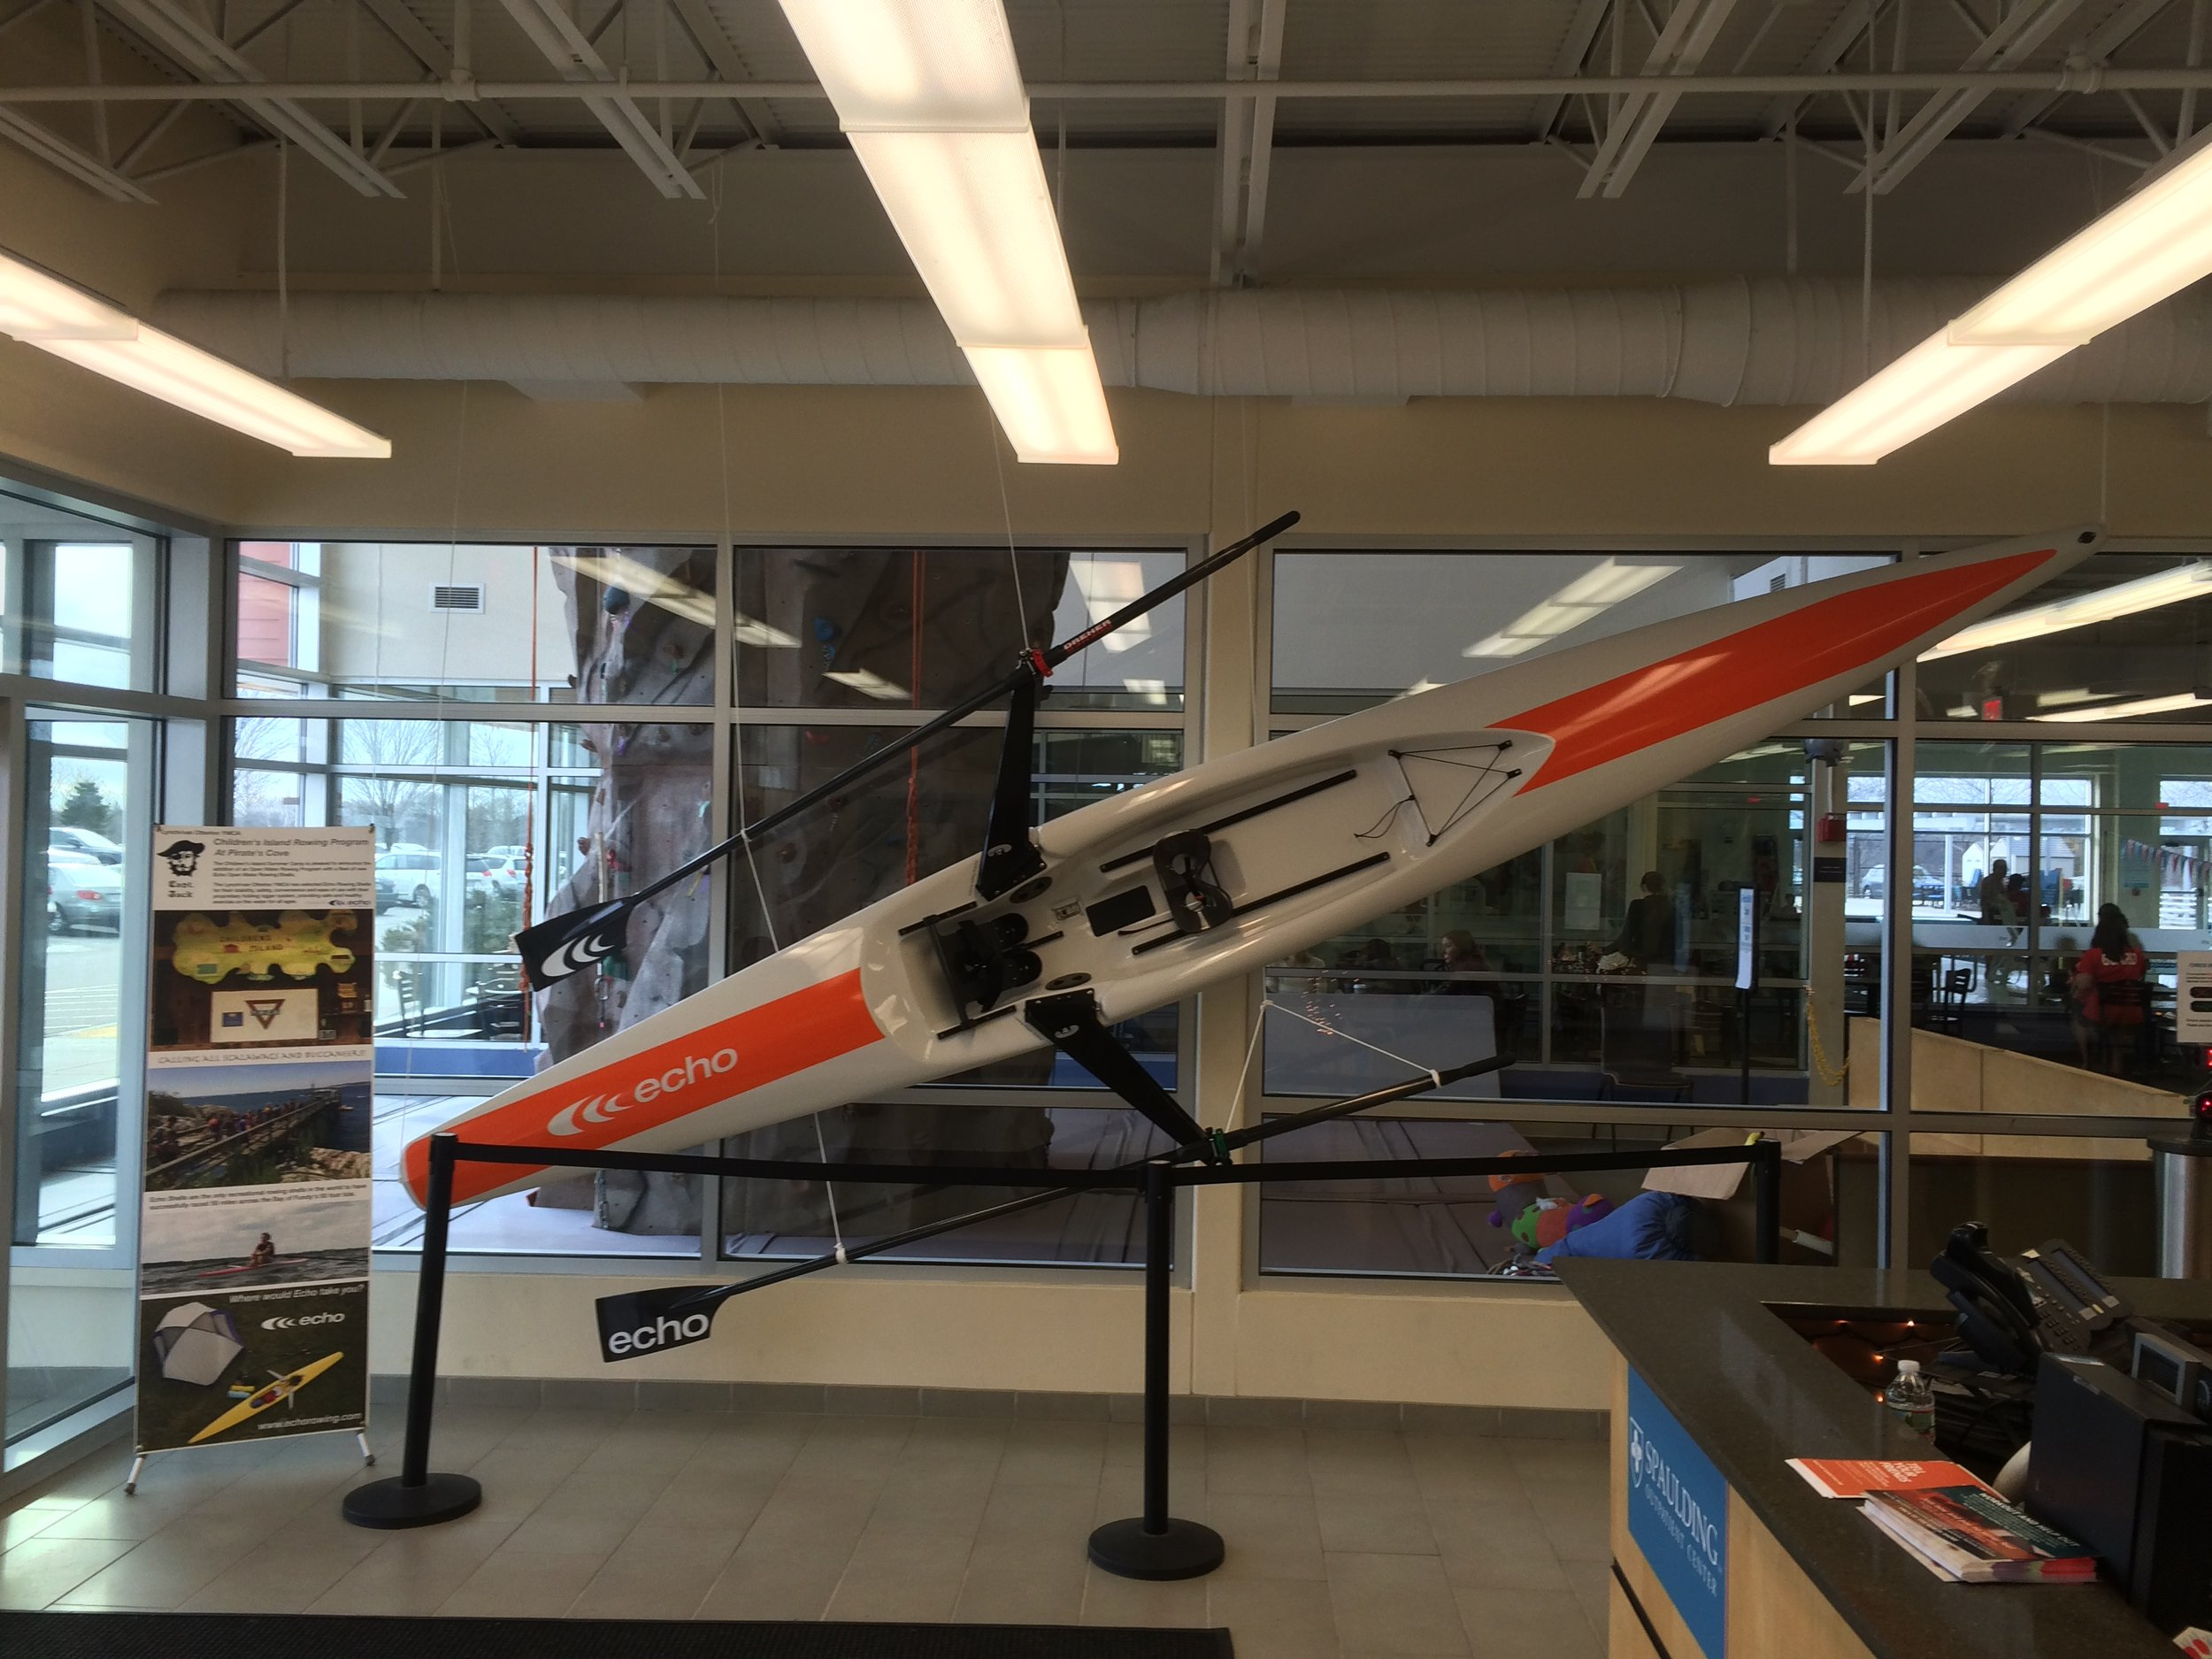 The instructor's Echo Sport on display in the Lynch / van Otterloo Marblehead YMCA lobby